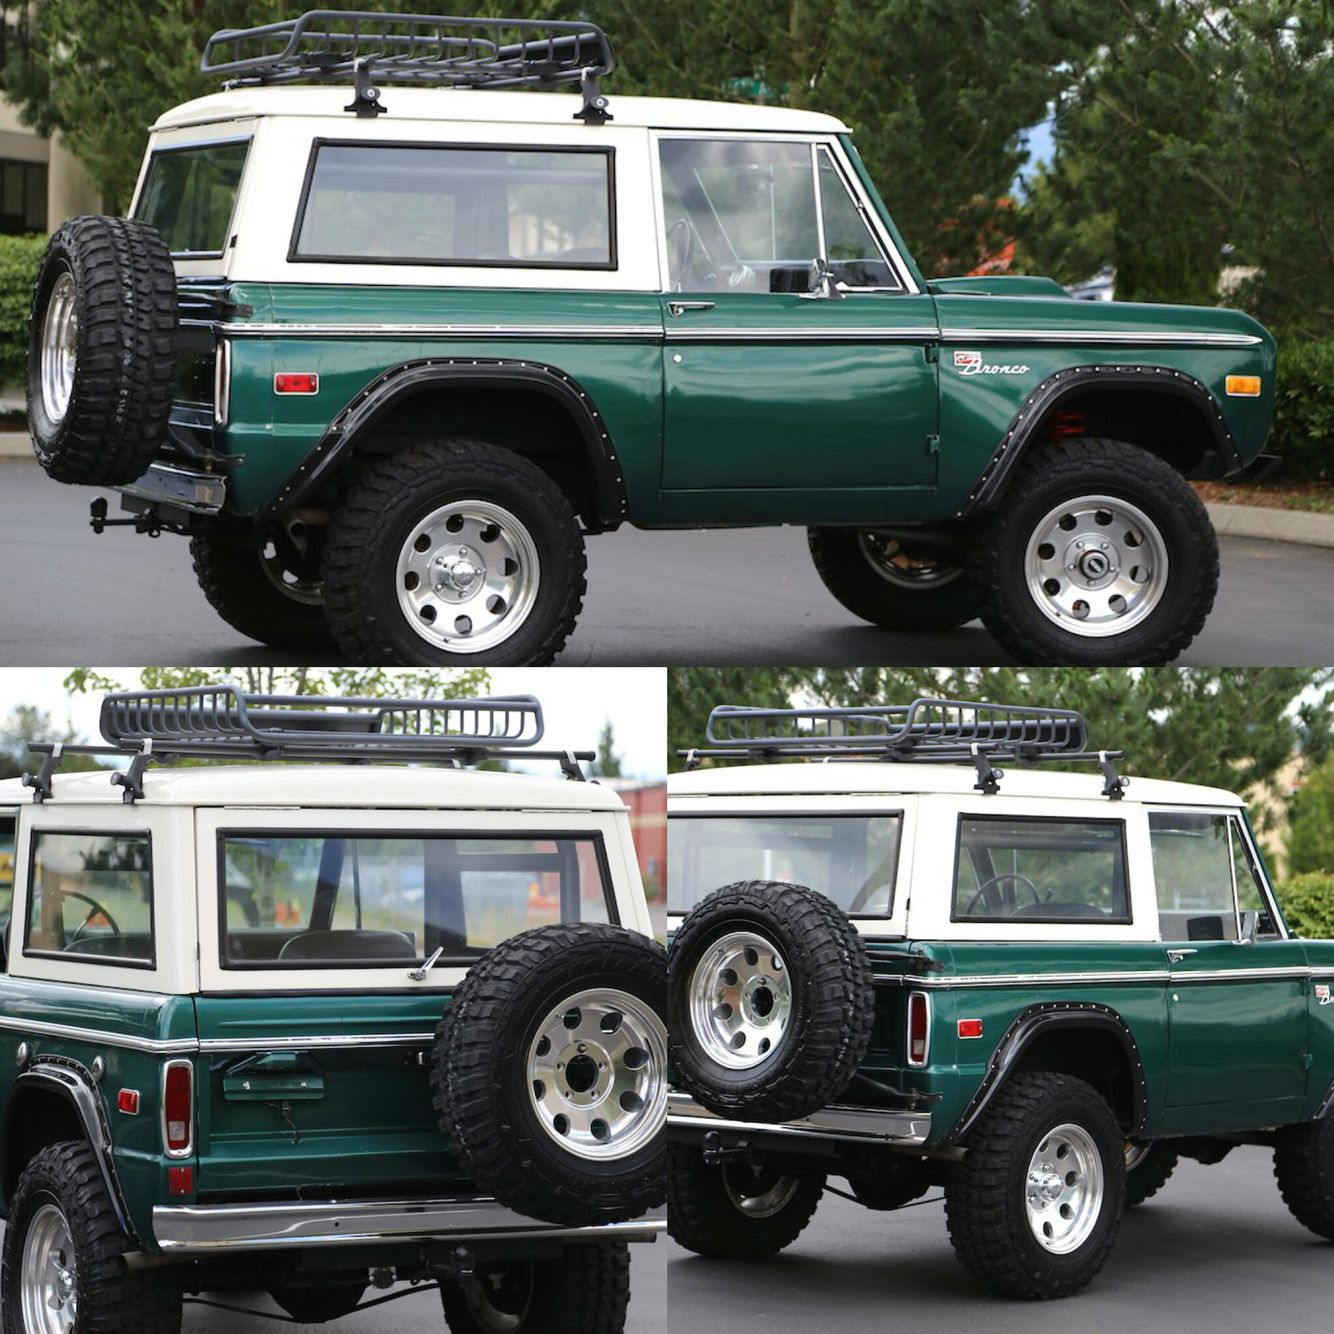 1975 for bronco price 32,900 Power Front Disc Brakes